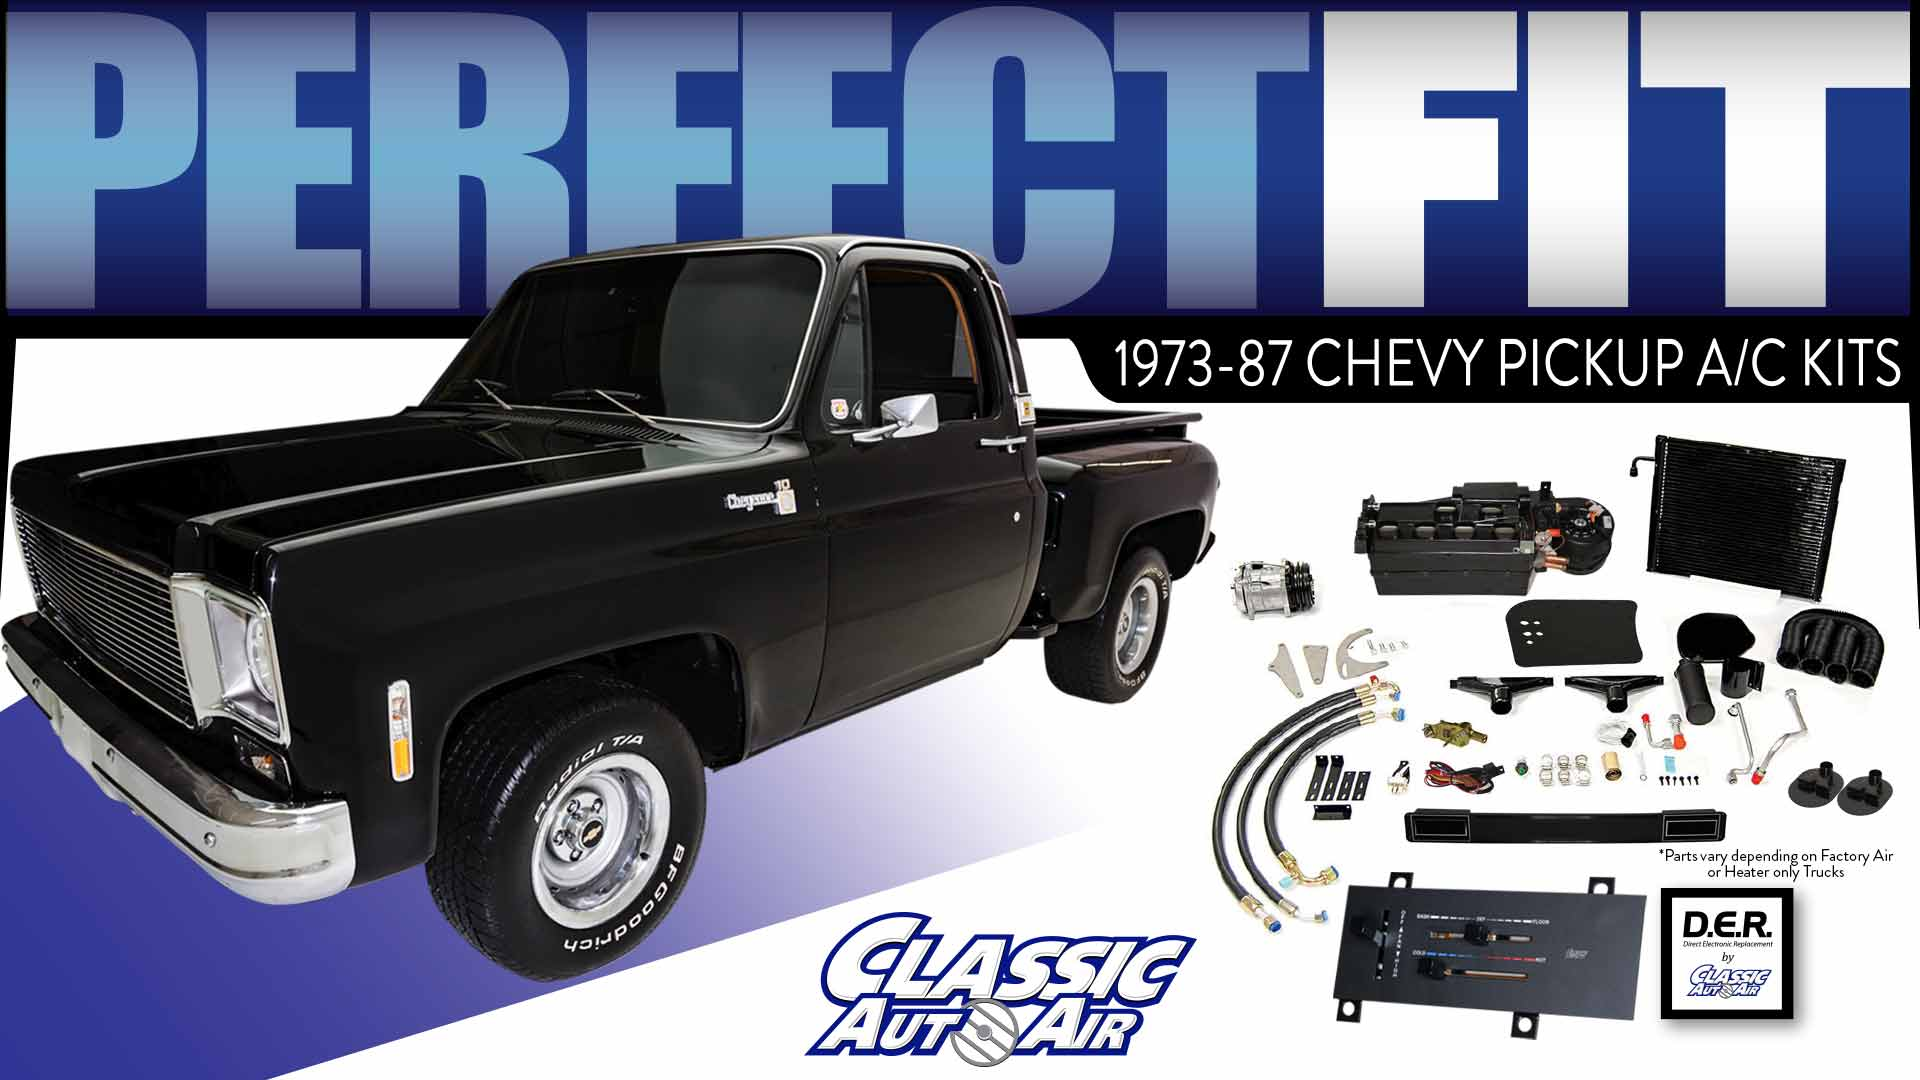 1973 1987 Chevy Pickup Trucks Air Conditioning Kits